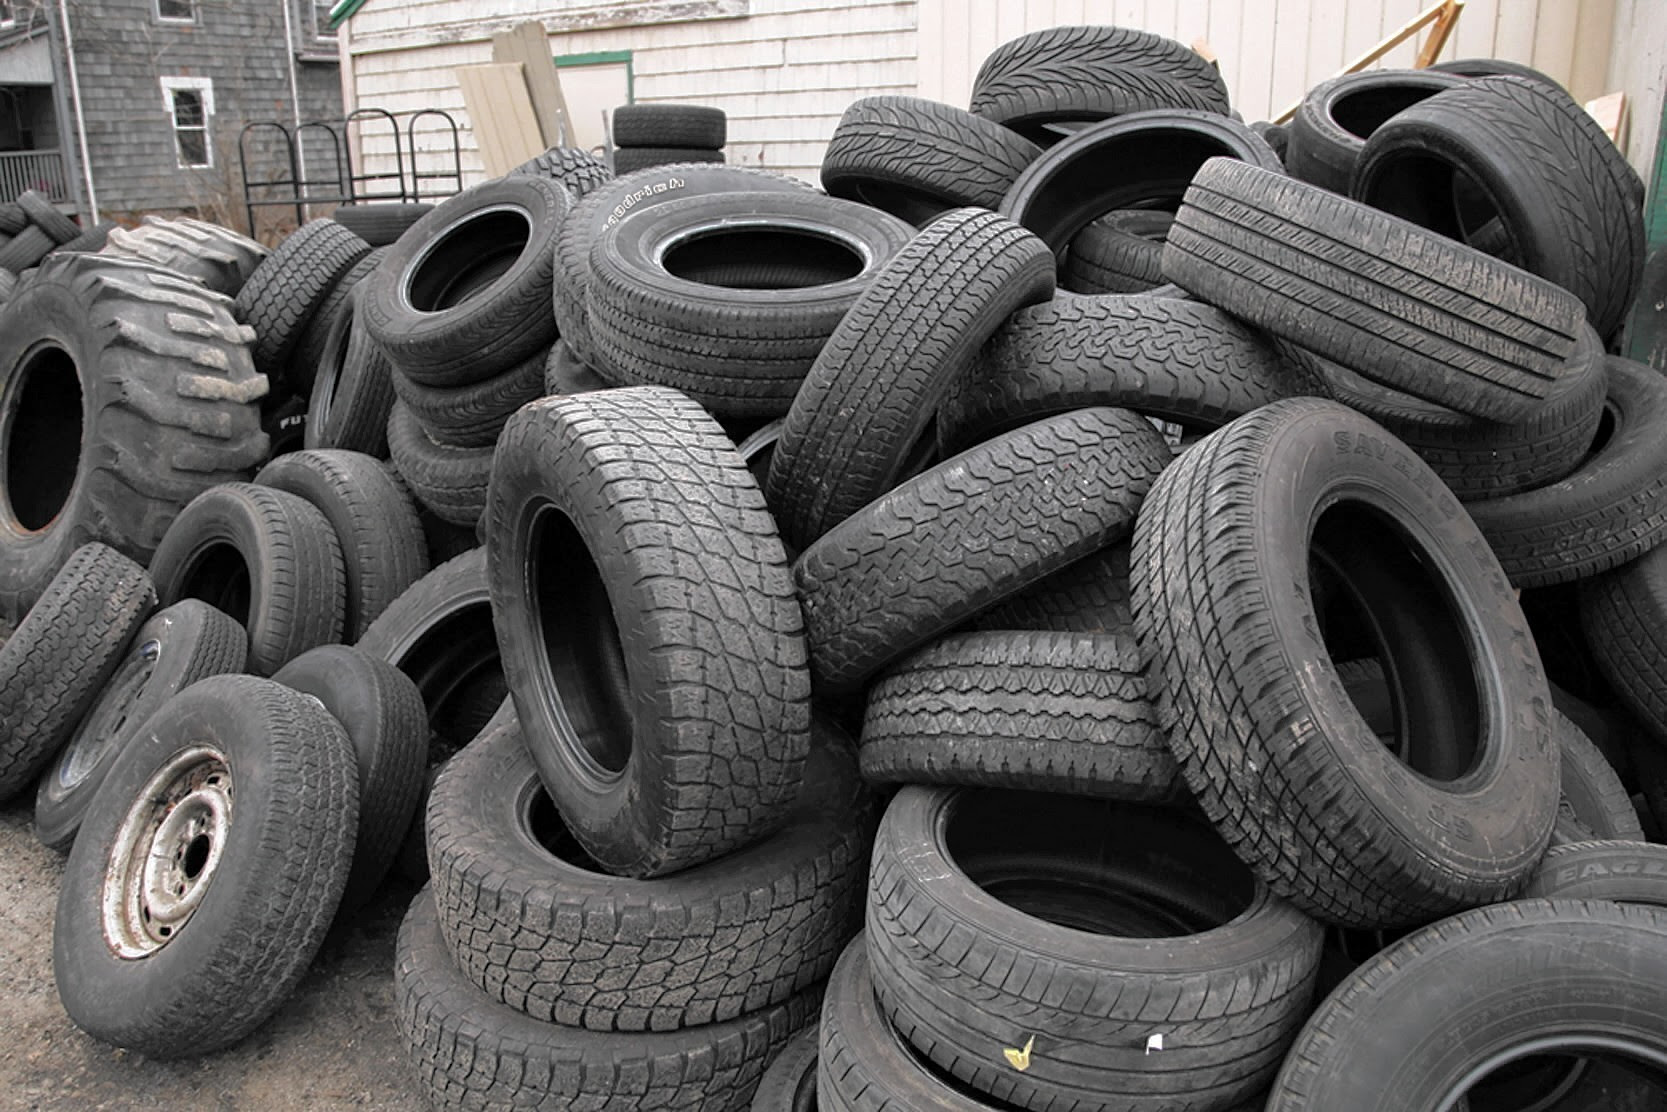 Abandoned Tires A Growing Problem For Cities But Great For Mosquitoes Hartford Courant